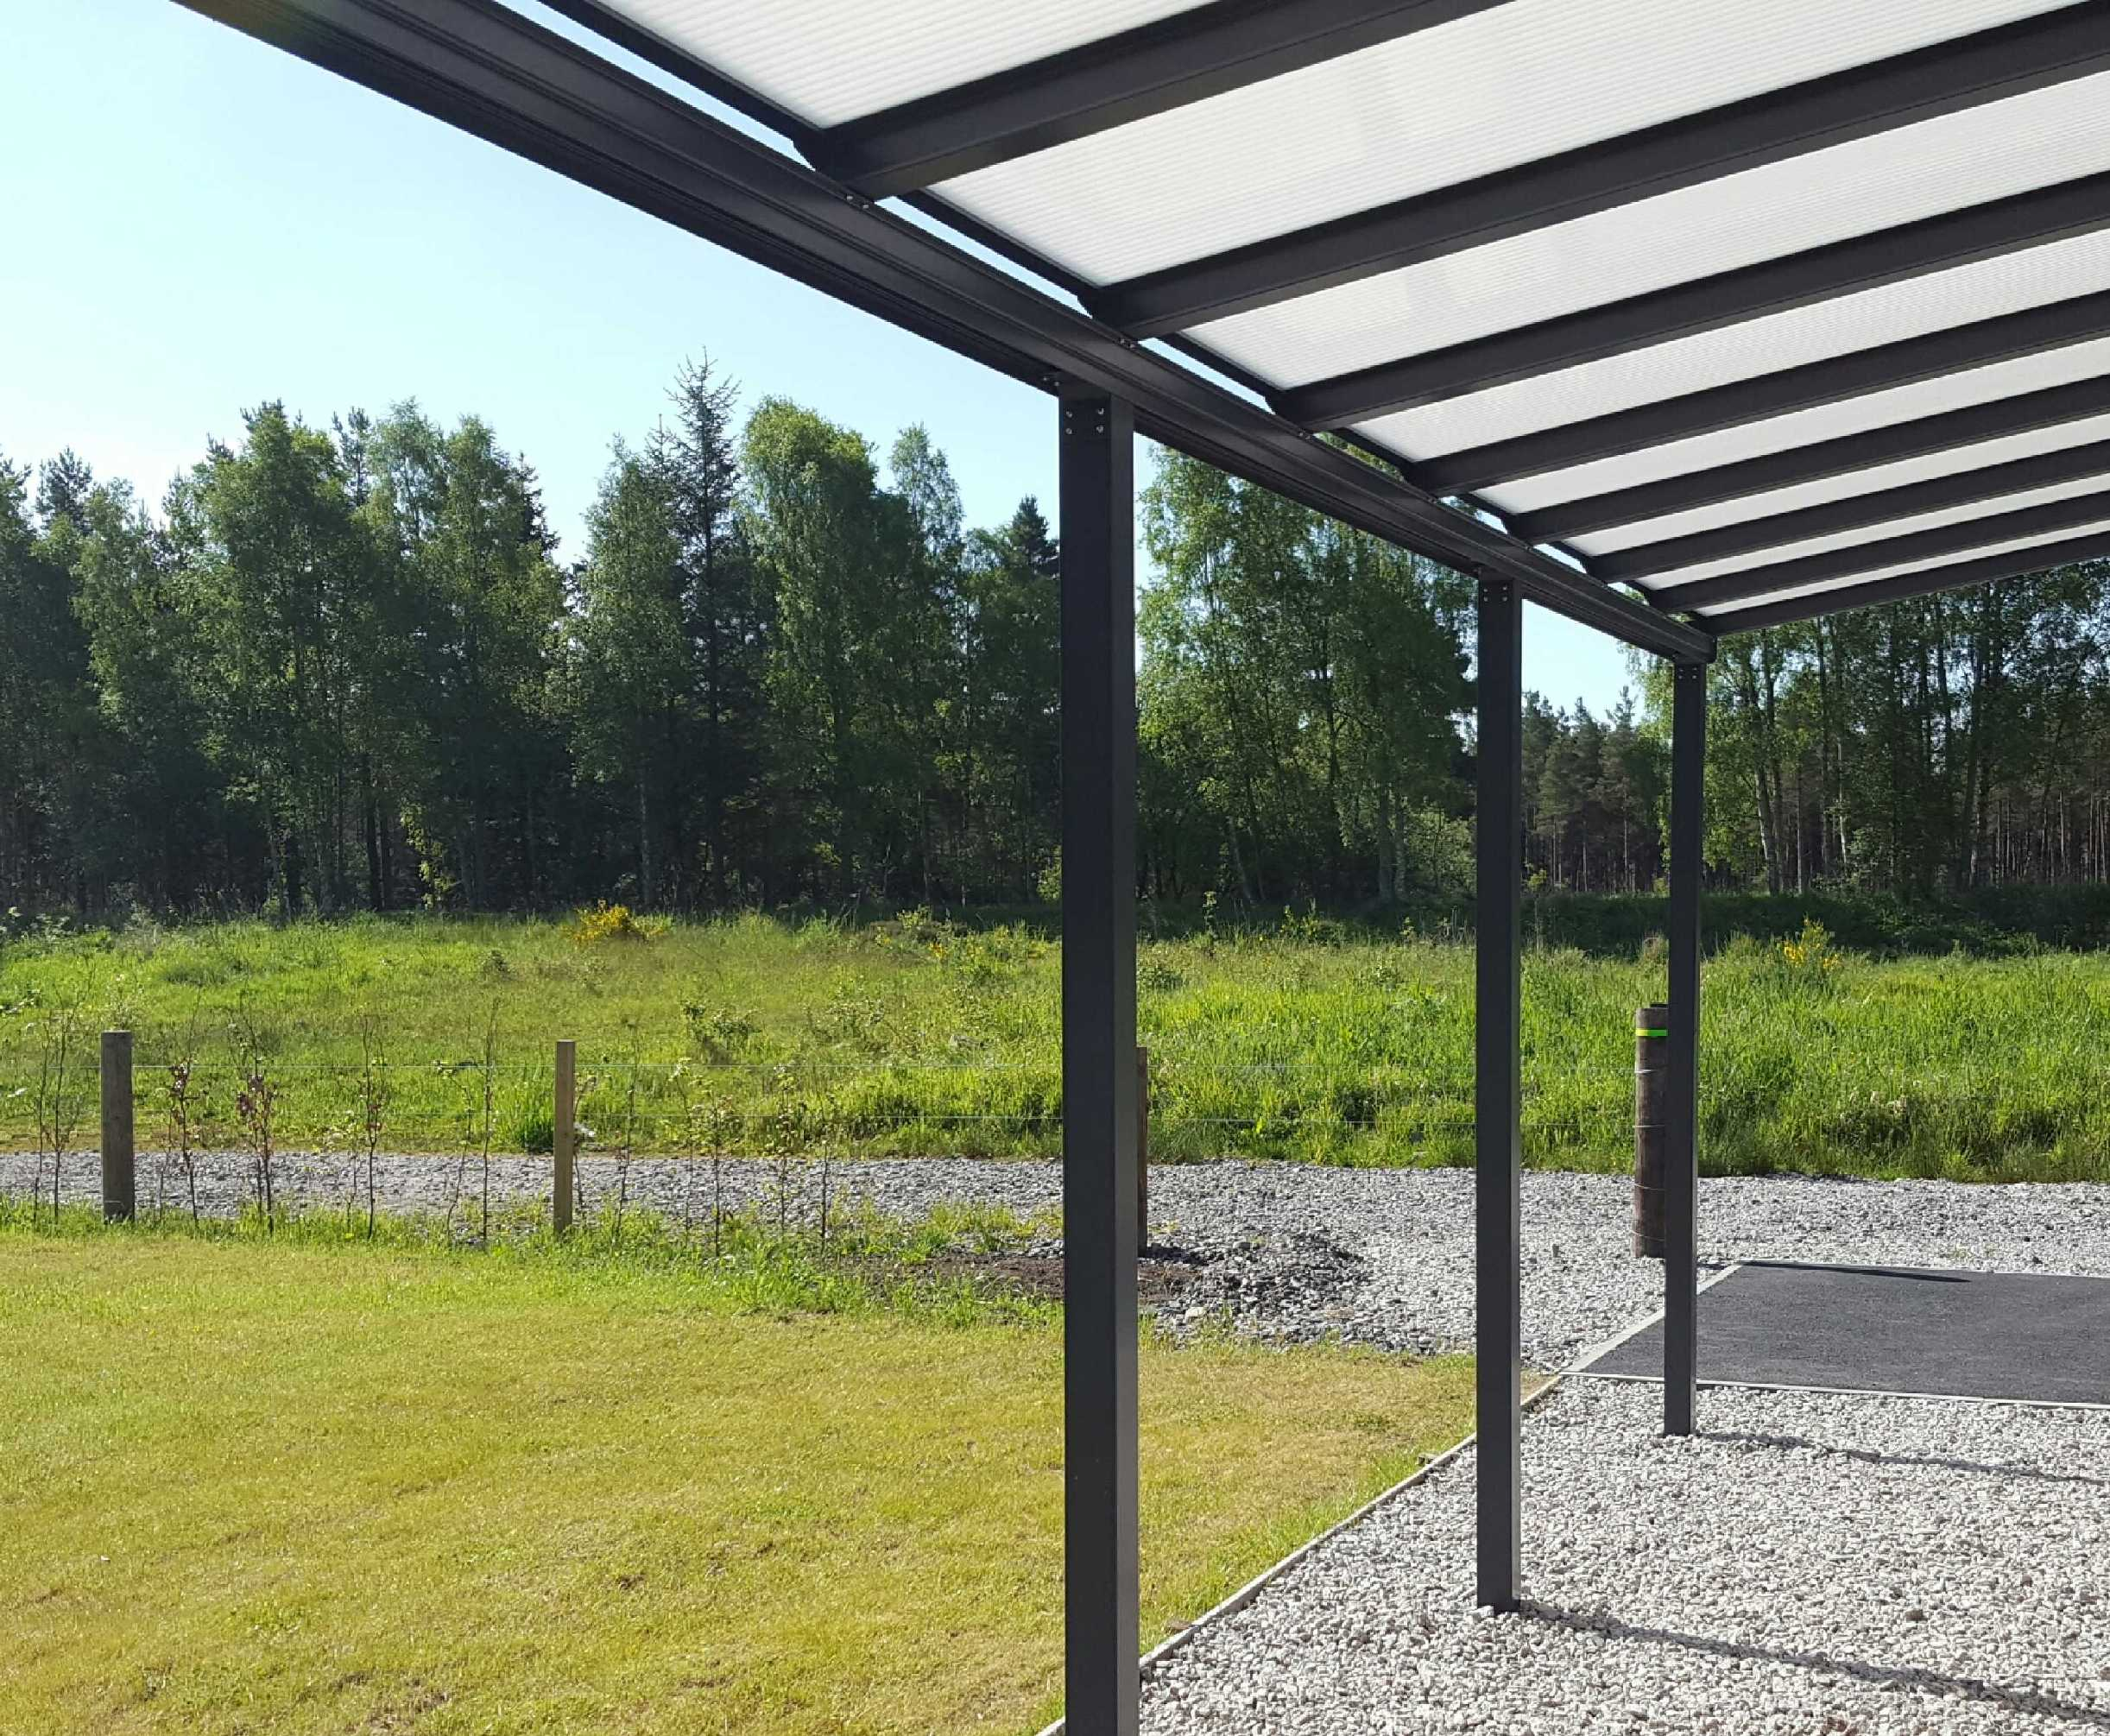 Omega Smart Lean-To Canopy, Anthracite Grey, 16mm Polycarbonate Glazing - 10.6m (W) x 3.5m (P), (5) Supporting Posts